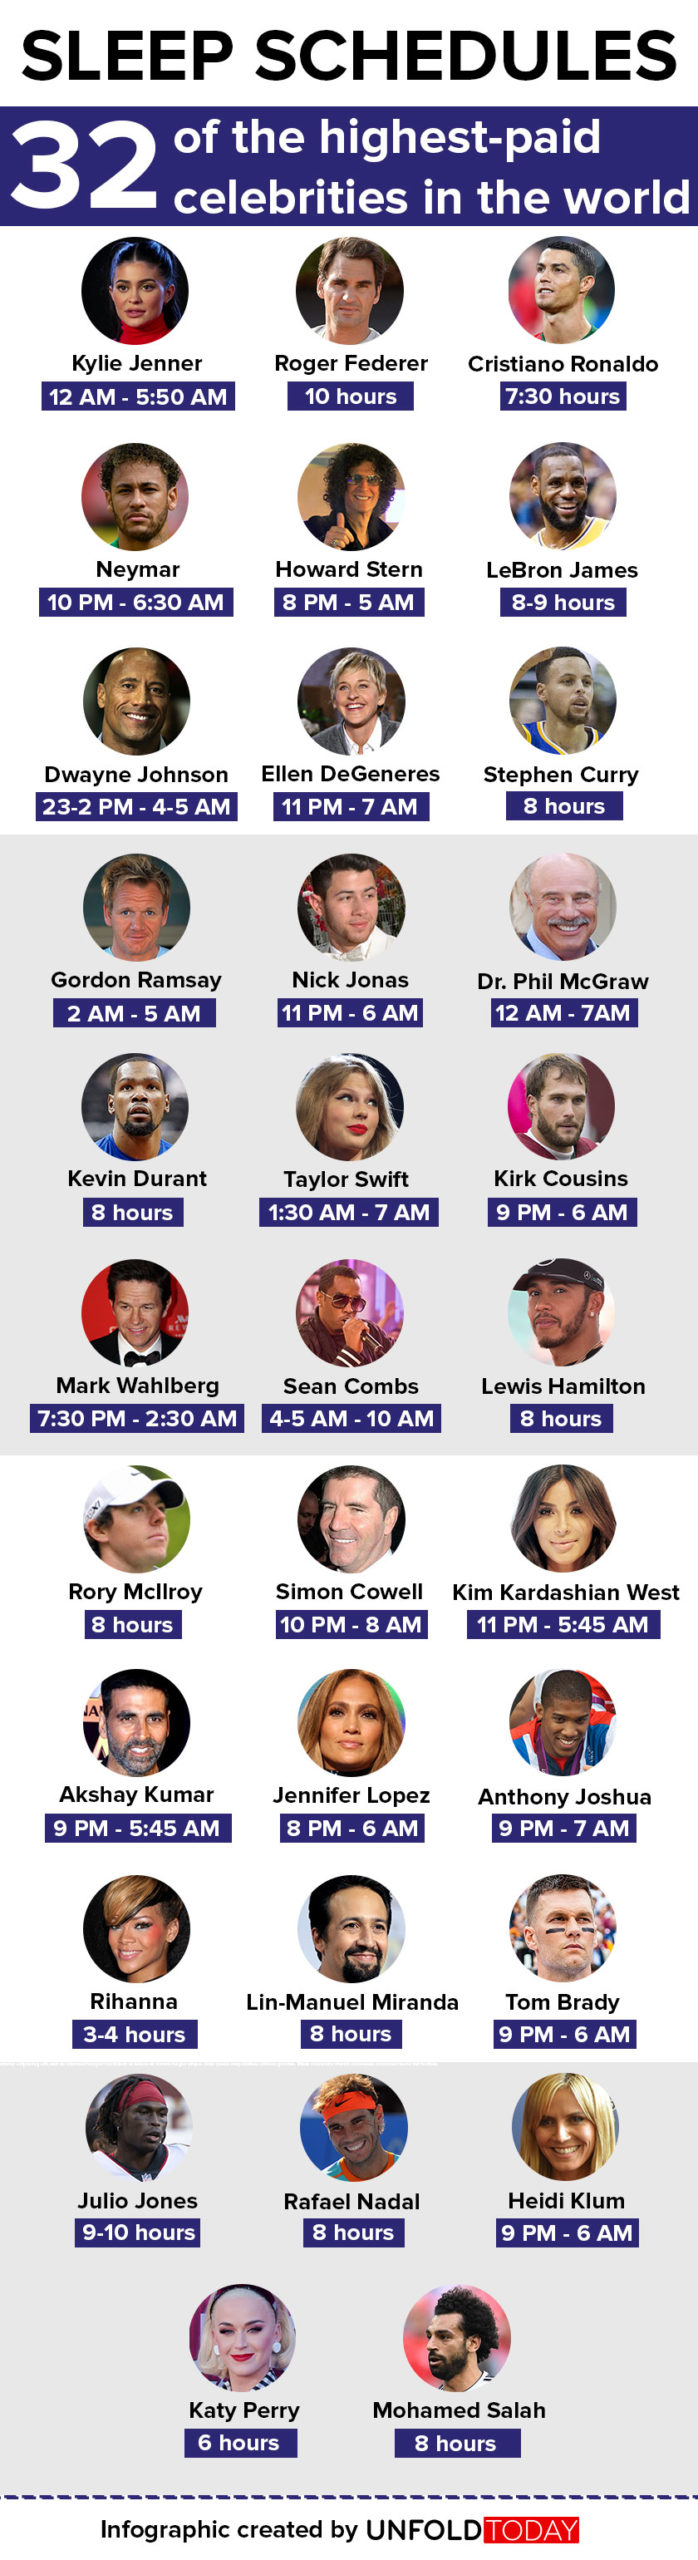 The sleep schedule of 32 of the highest-paid celebrities (infographic)